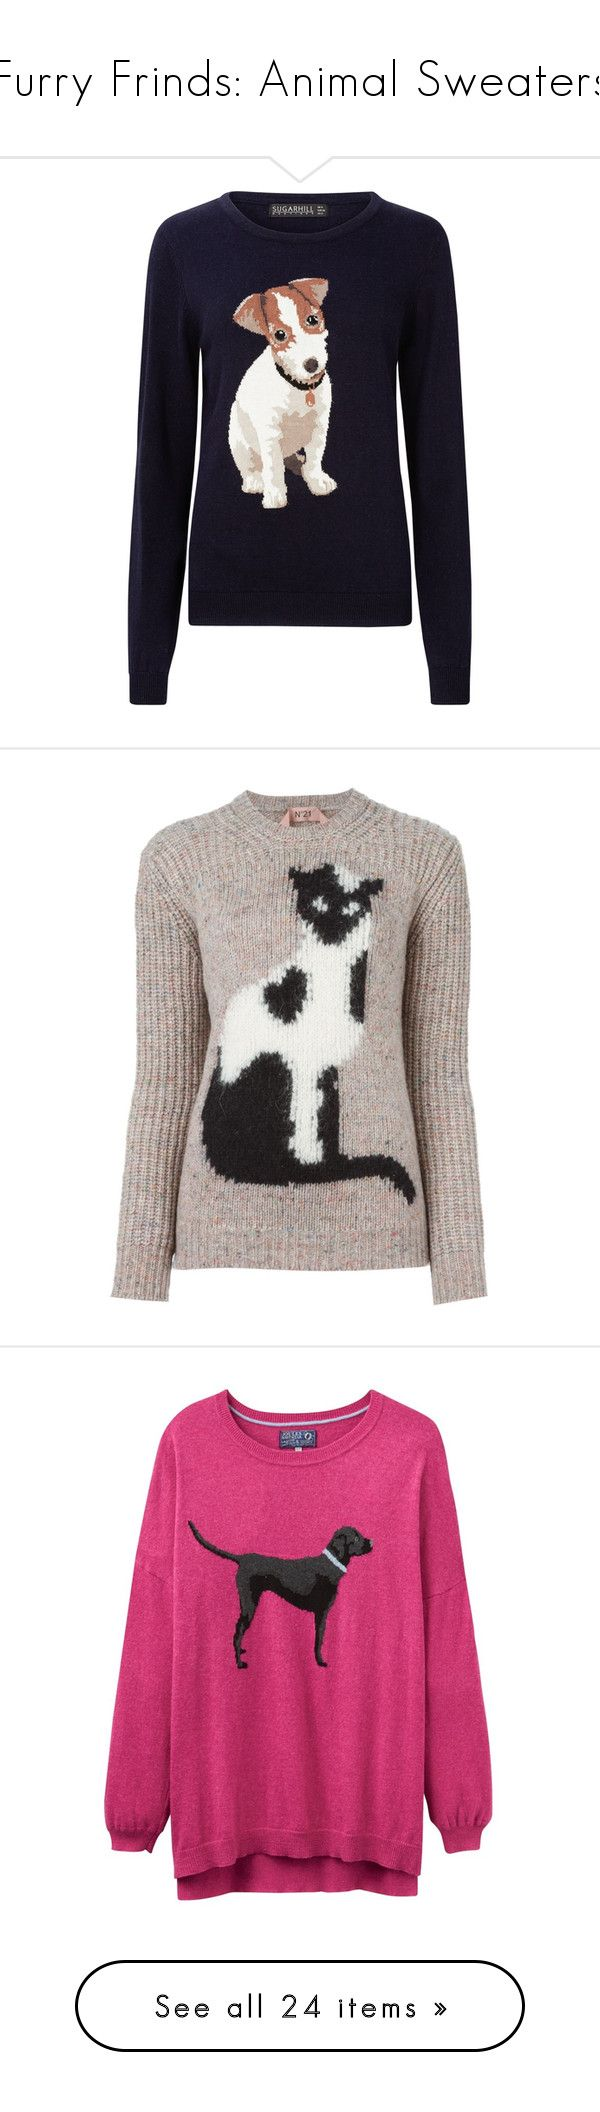 """""""Furry Frinds: Animal Sweaters"""" by polyvore-editorial ❤ liked on Polyvore featuring animalsweaters, tops, sweaters, navy sweater, round neck top, navy blue sweater, blue sweater, jumpers sweaters, nude and cat print sweater"""